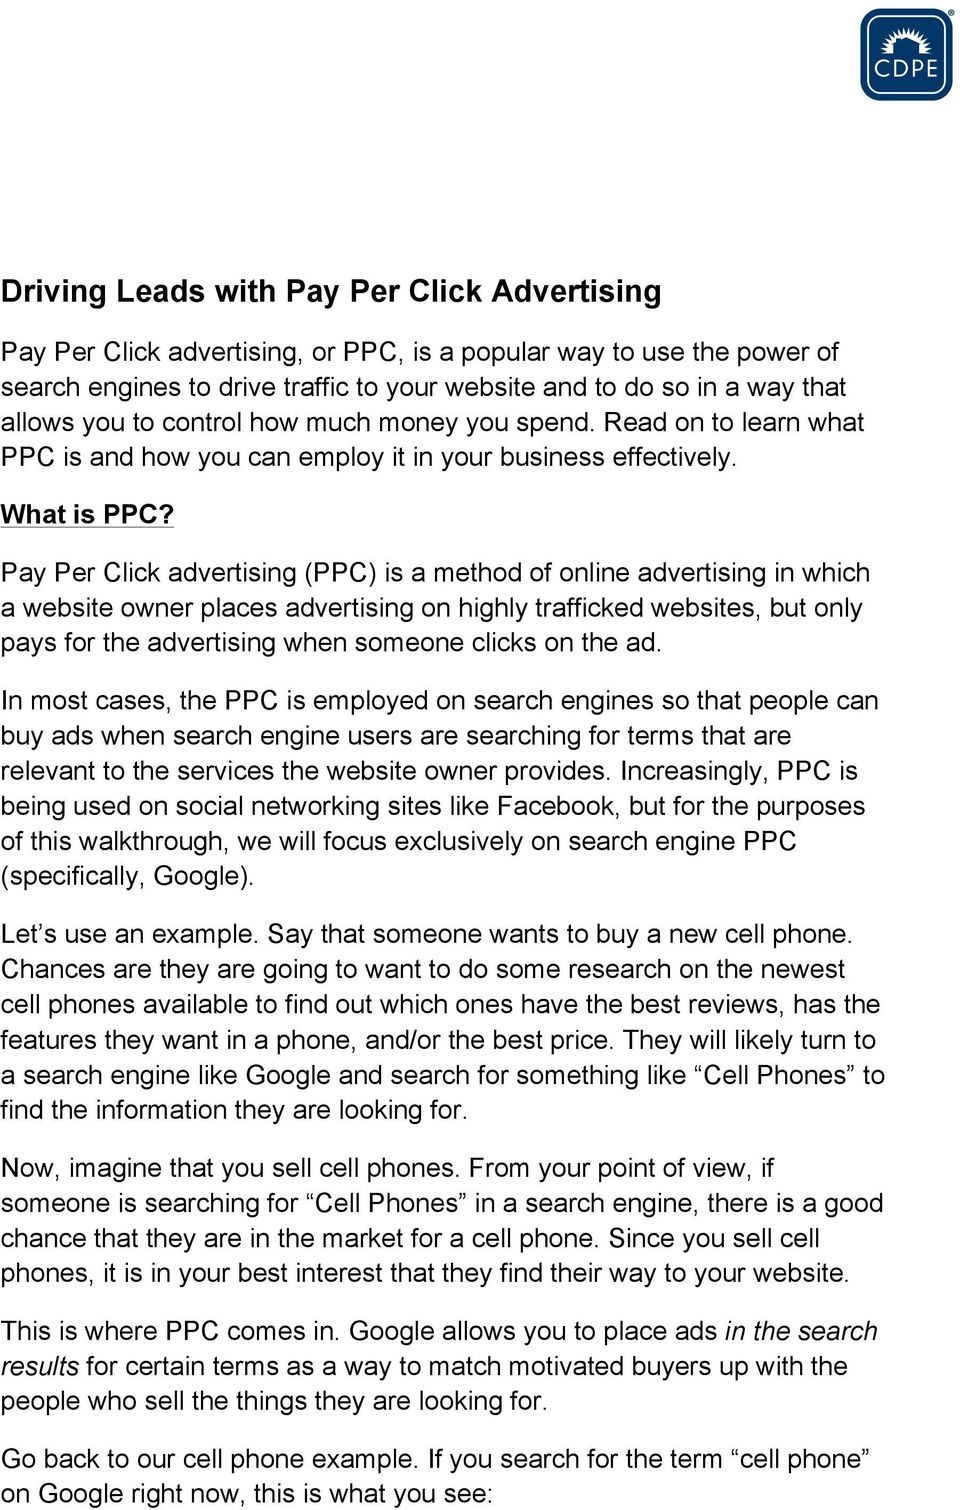 Pay Per Click advertising (PPC) is a method of online advertising in which a website owner places advertising on highly trafficked websites, but only pays for the advertising when someone clicks on